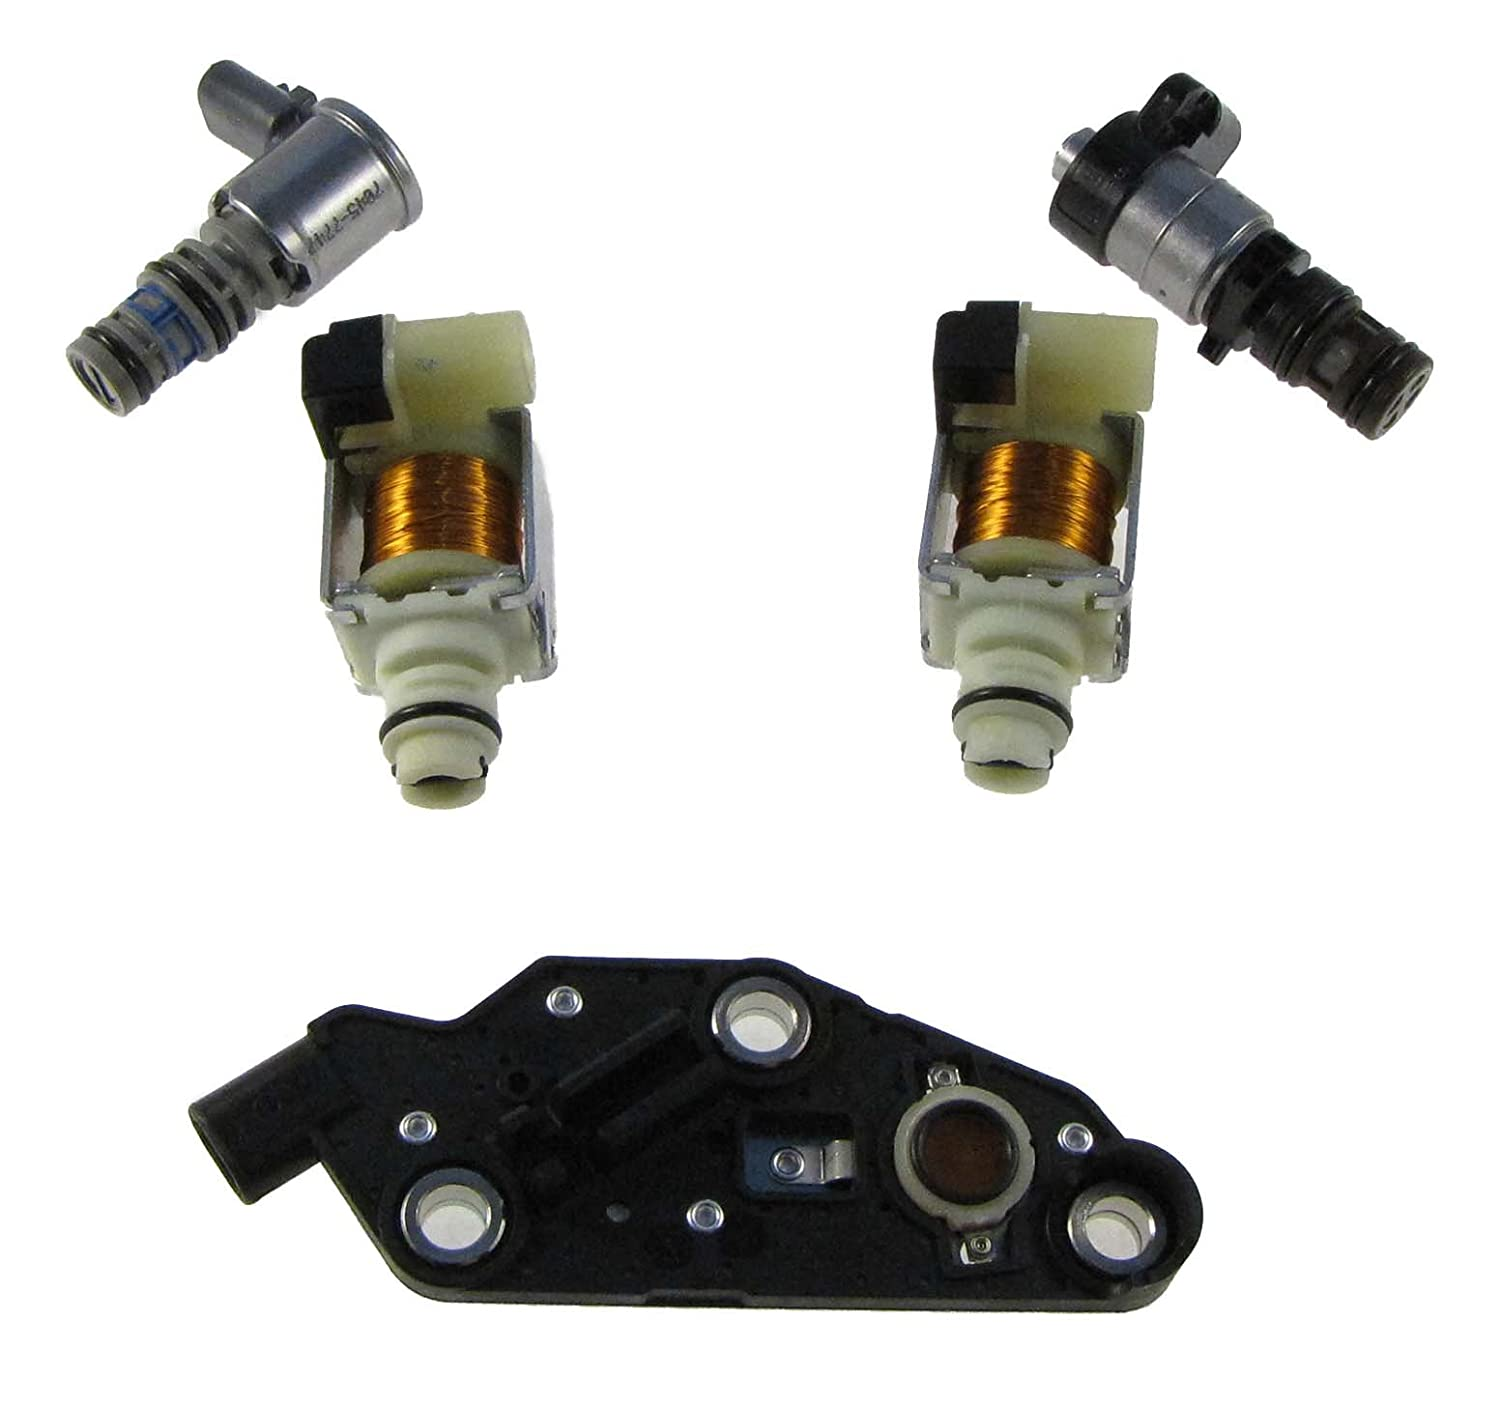 1 Pressure Switch Style GM 4T65E 5 Piece Solenoid Set